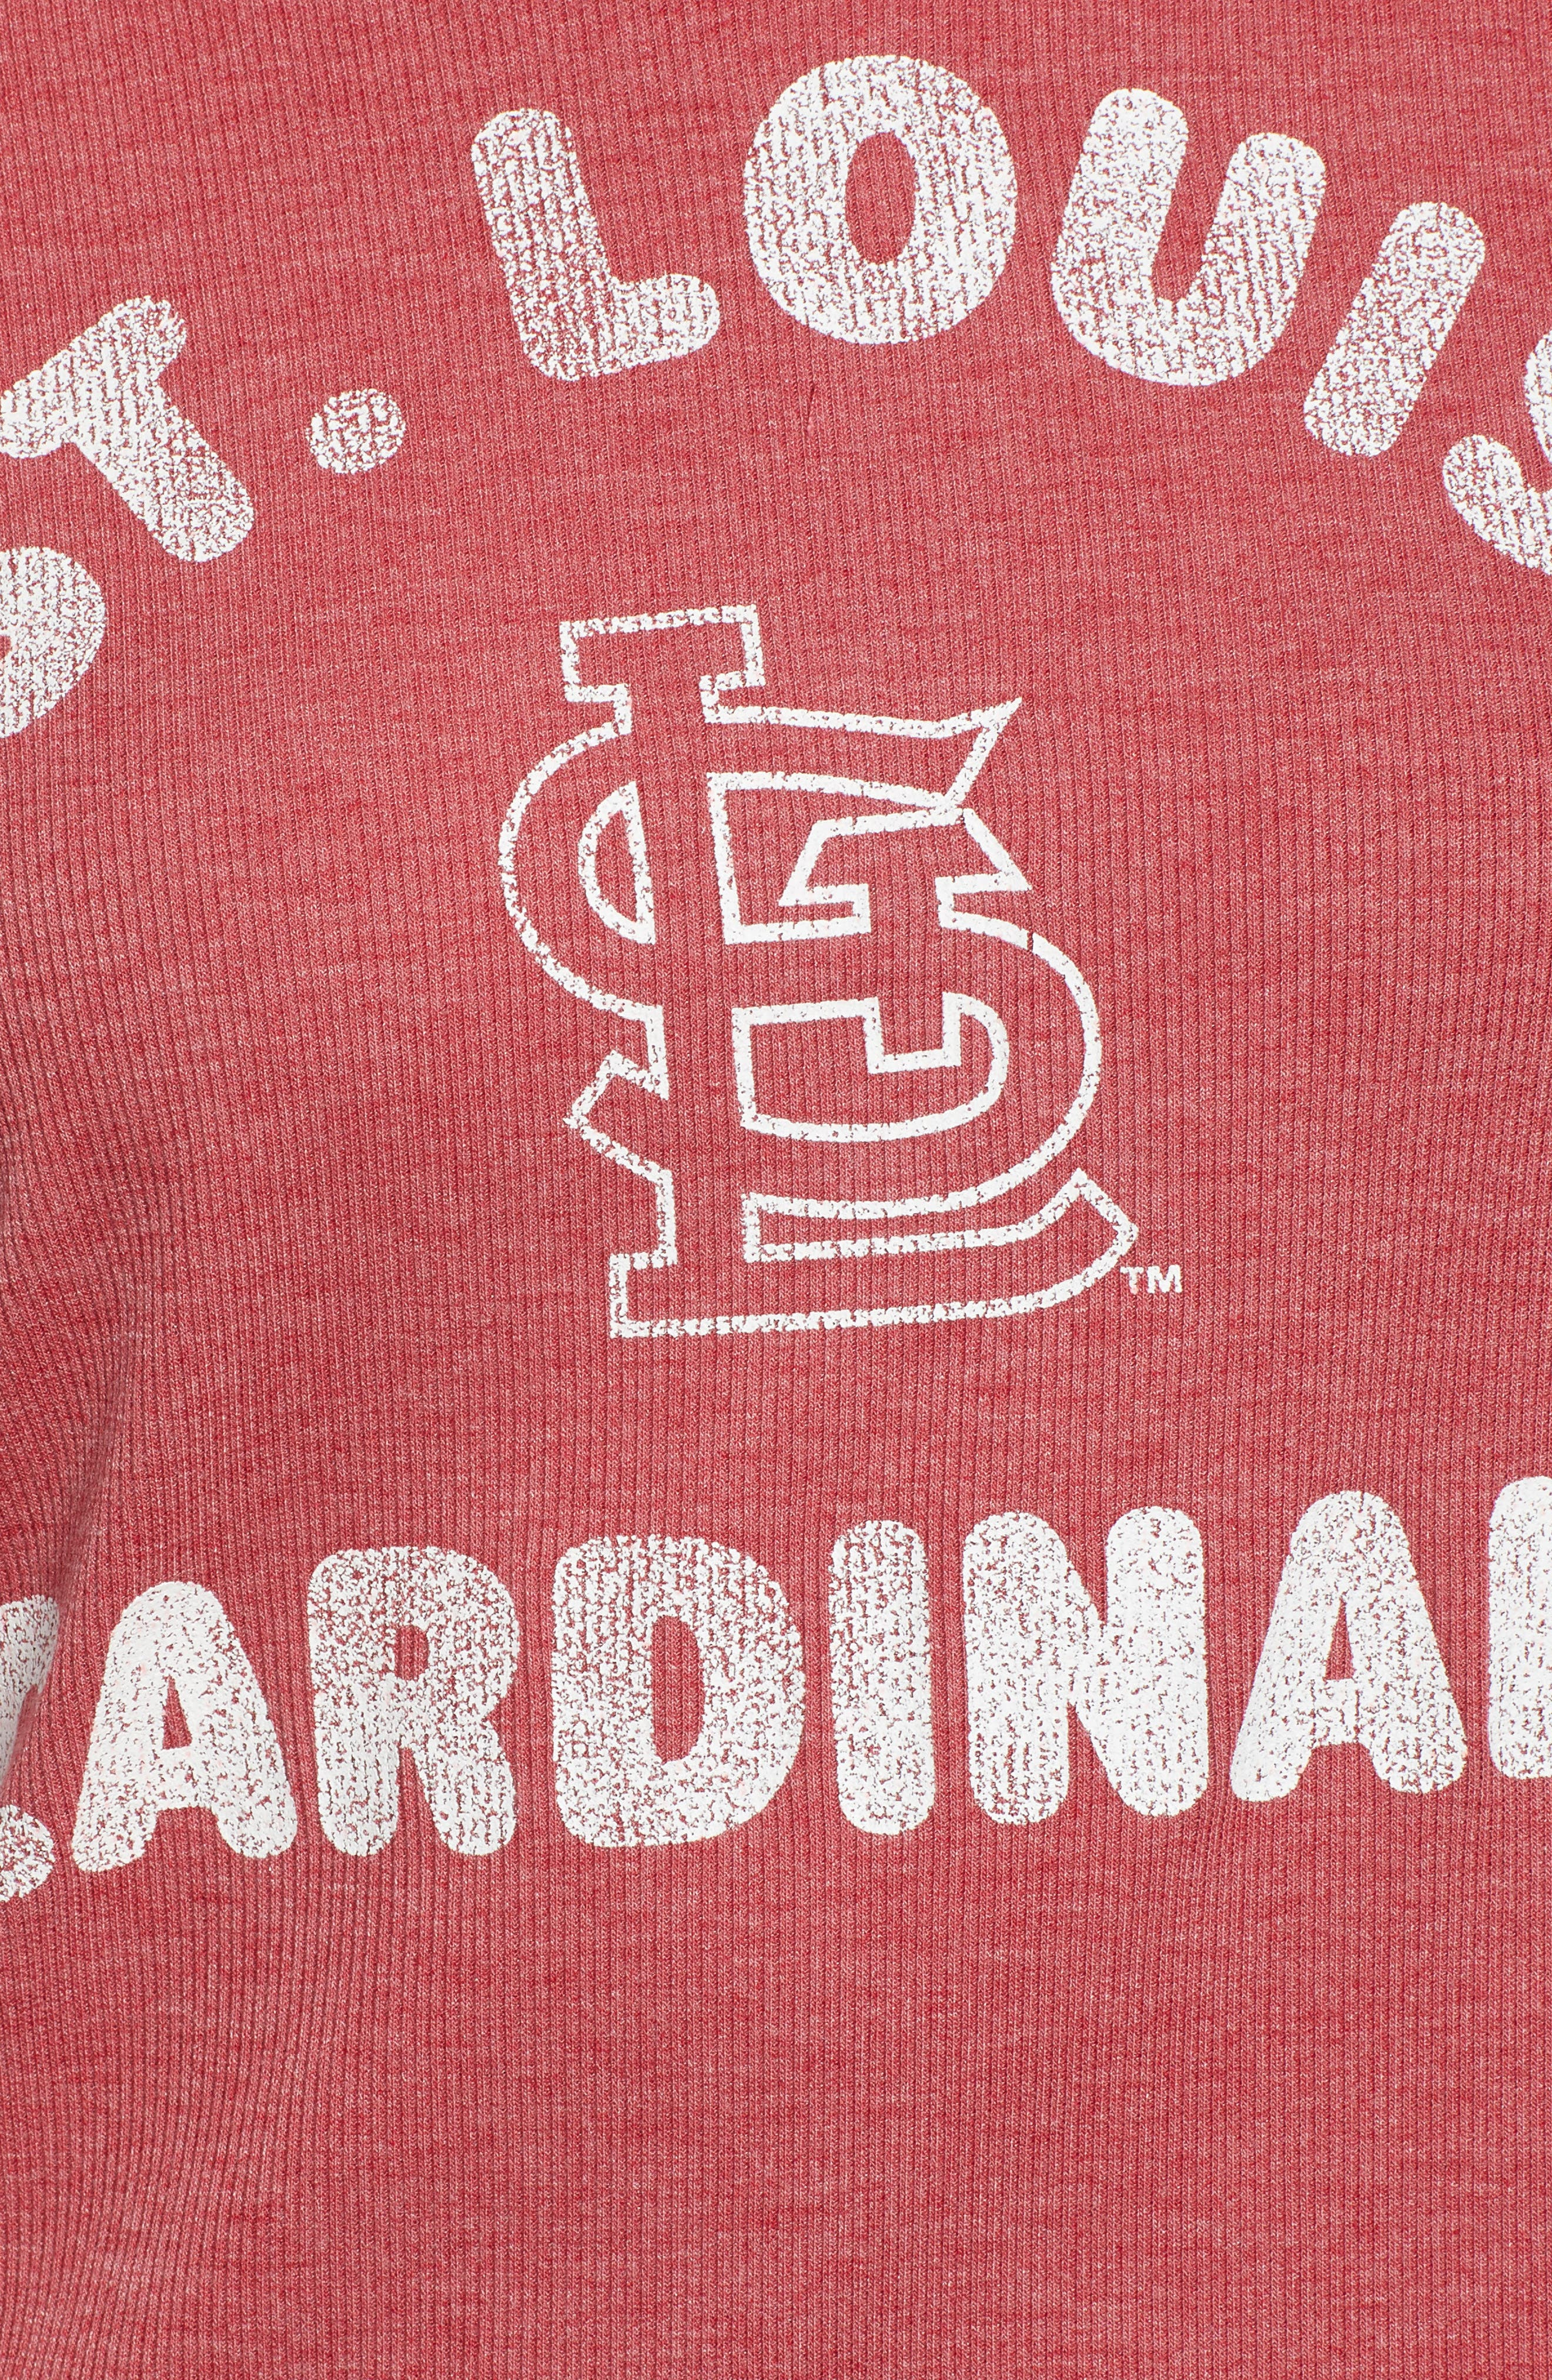 Campbell St. Louis Cardinals Rib Knit Hooded Top,                             Alternate thumbnail 6, color,                             Rescue Red